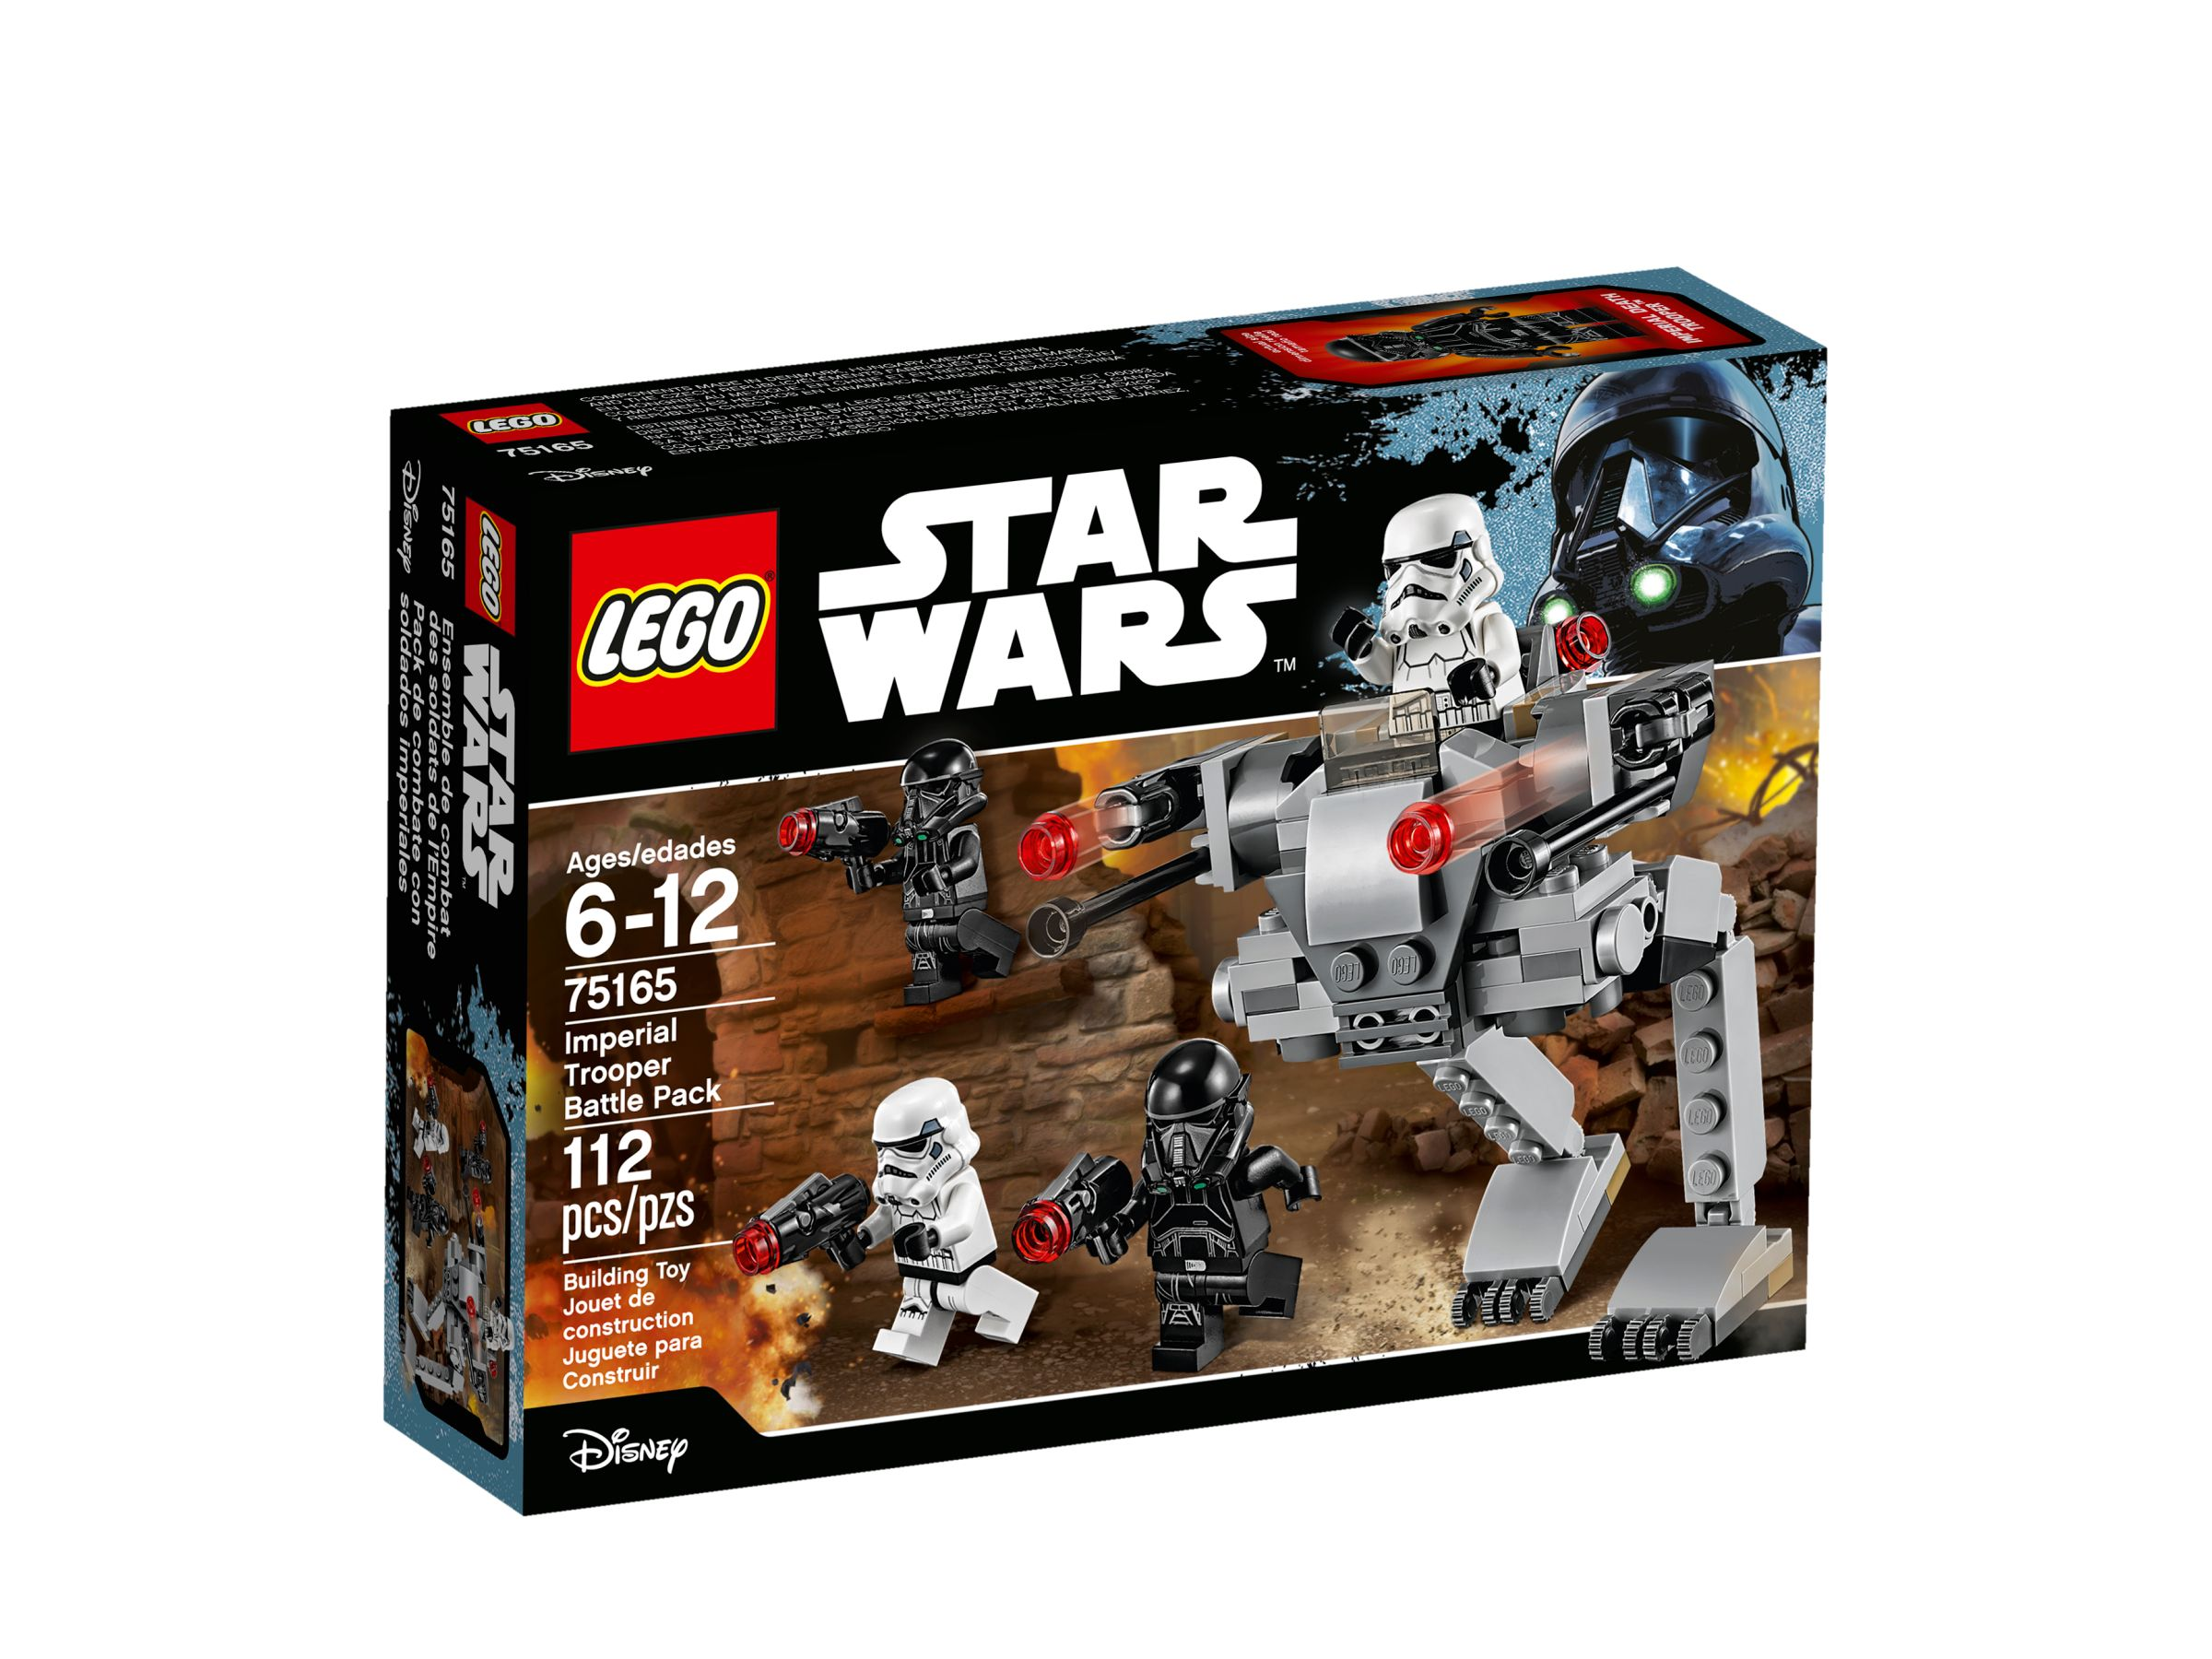 LEGO Star Wars 75165 Imperial Trooper Battle Pack LEGO_75165_alt1.jpg